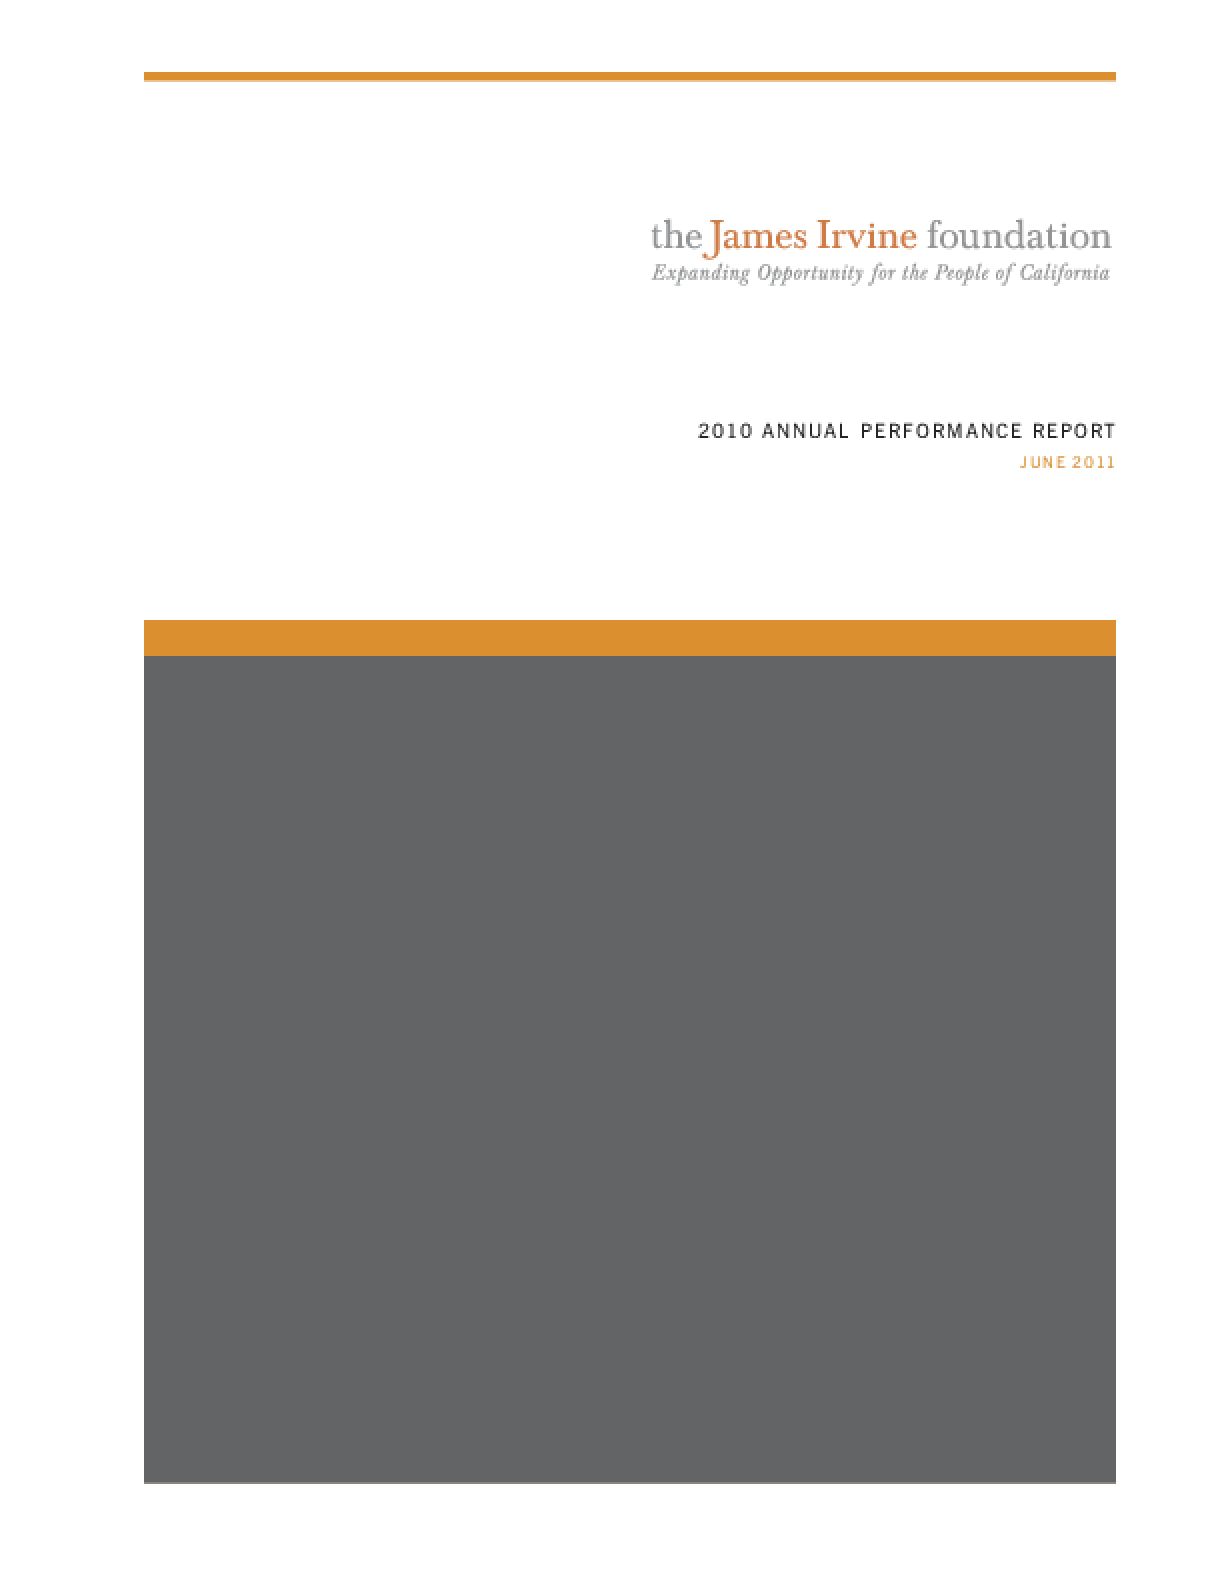 James Irvine Foundation 2010 Annual Performance Report